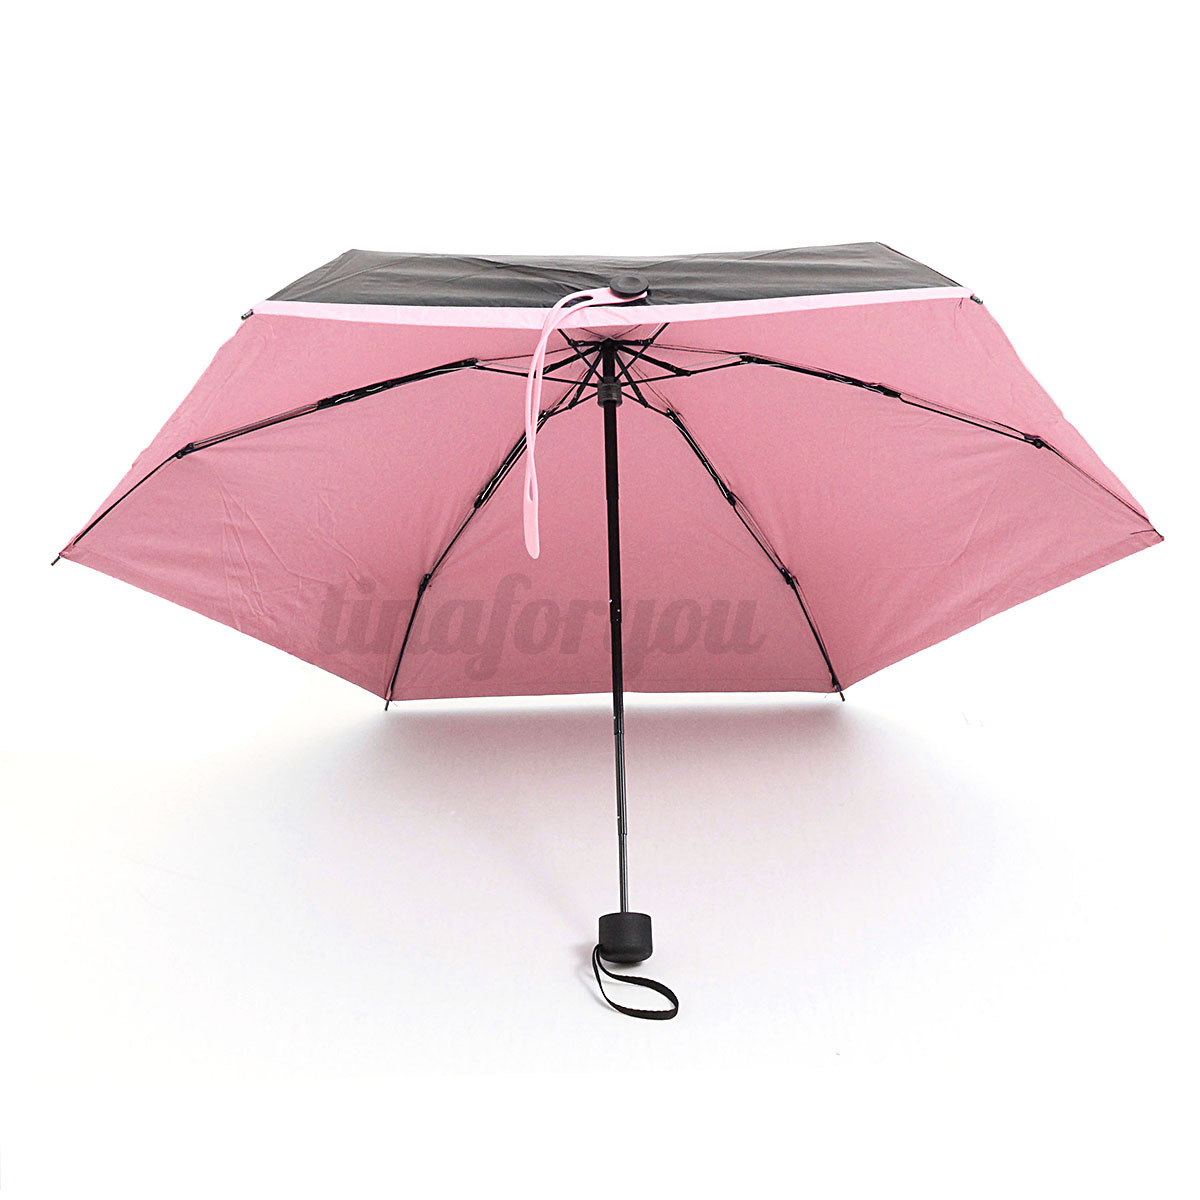 anti uv pocket parasol compact folding windproof rain sun protection umbrella ebay. Black Bedroom Furniture Sets. Home Design Ideas